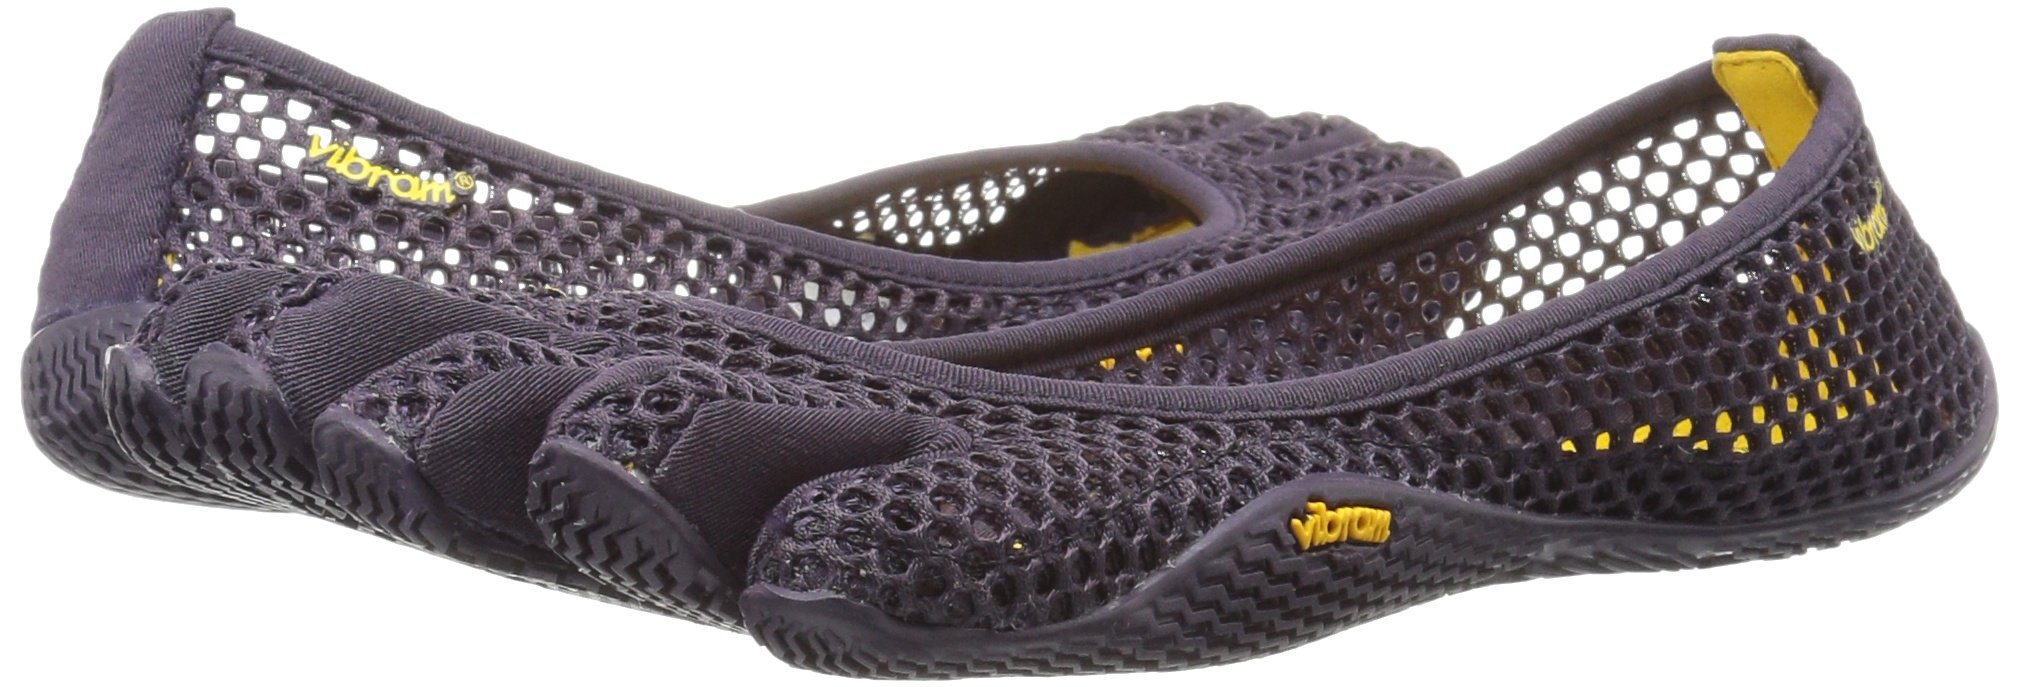 Vibram Women's VI-B Cross-Trainer Shoe, Nightshade, 40 EU/8 M US by Vibram (Image #6)